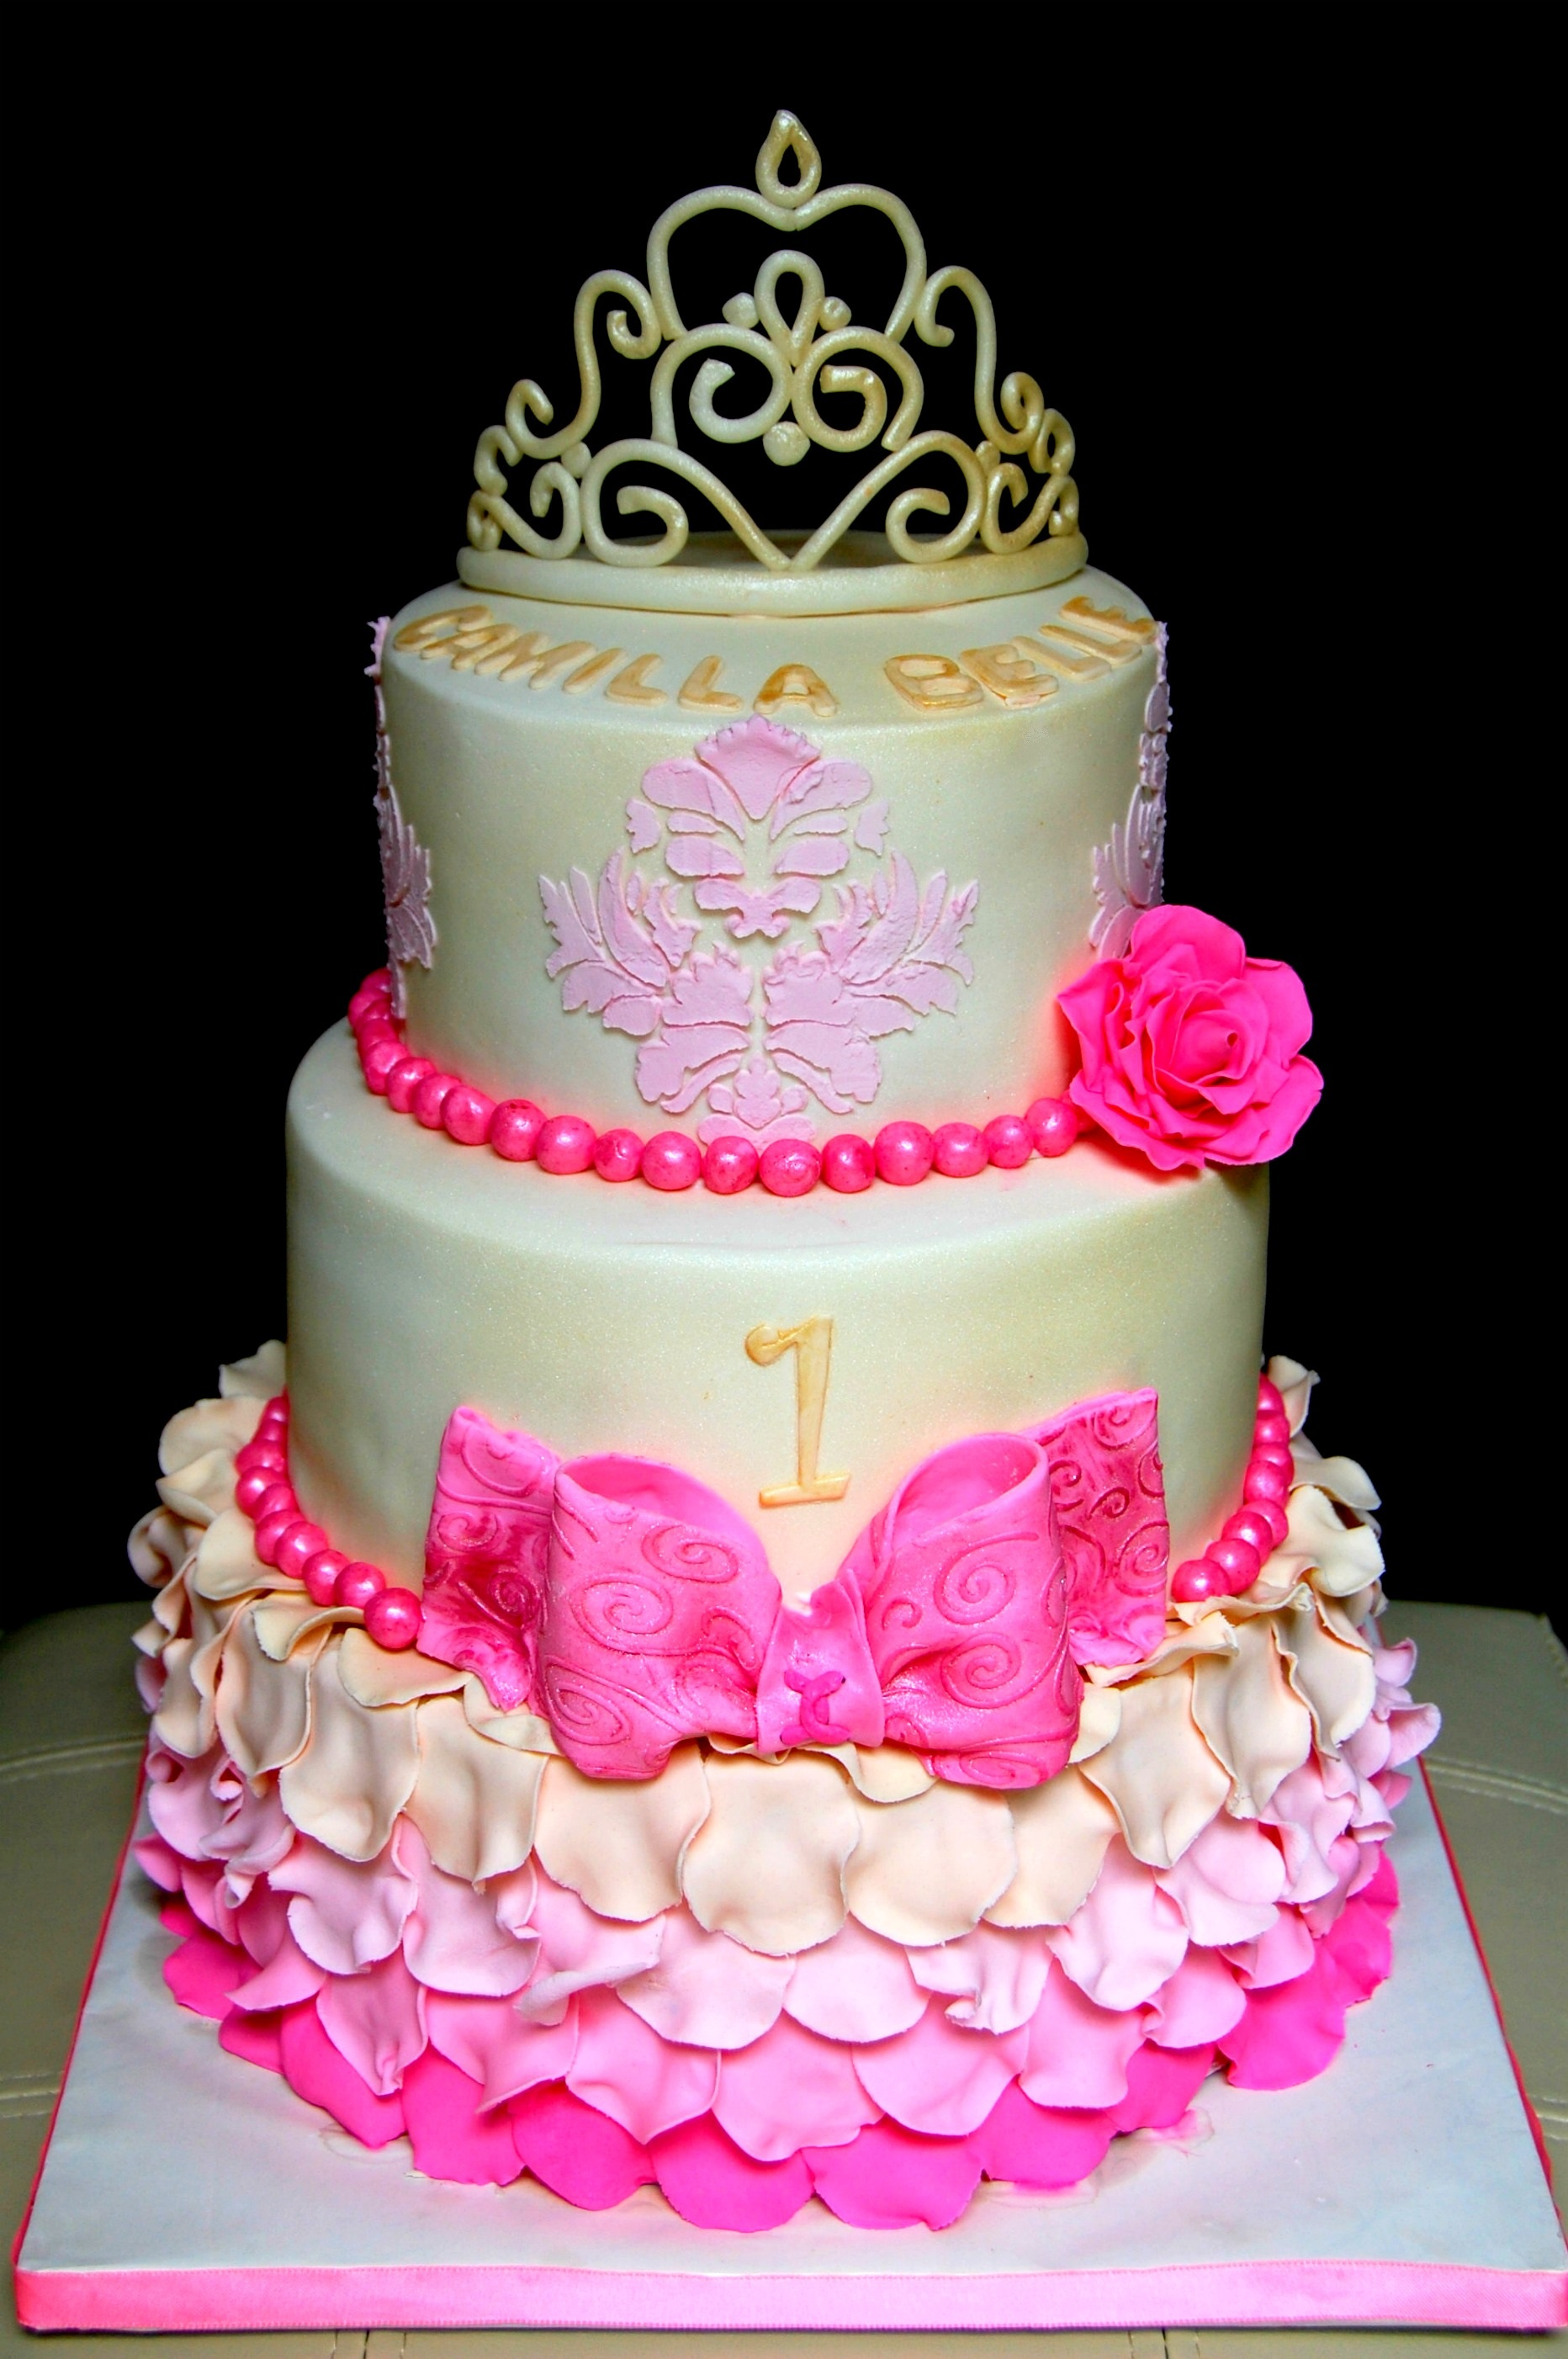 Vintage Princess themed birthday Cake Marias Dream Cakes